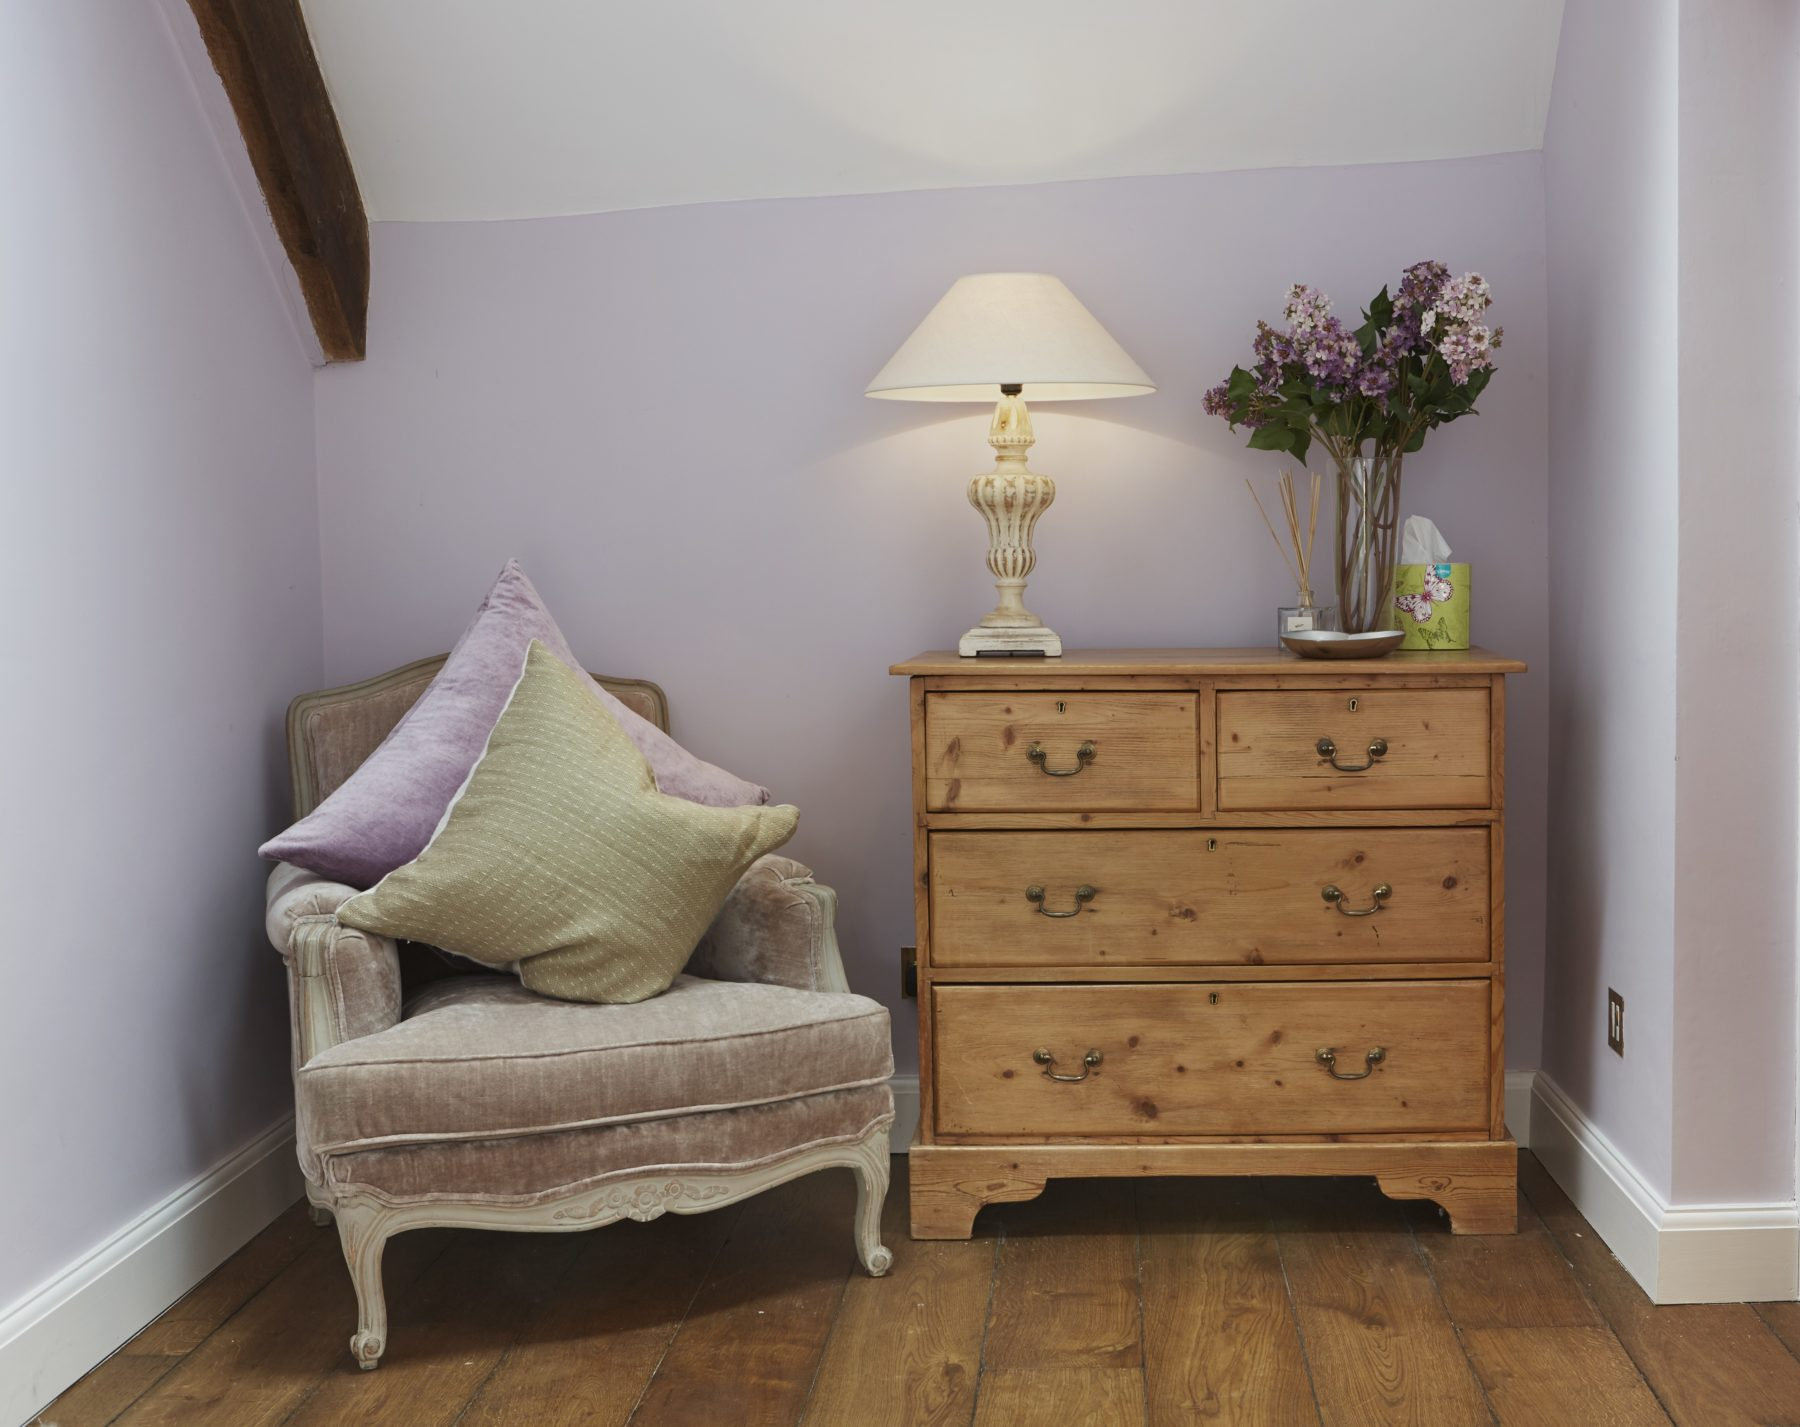 lavender room wood floor wood chest of drawers traditional chair